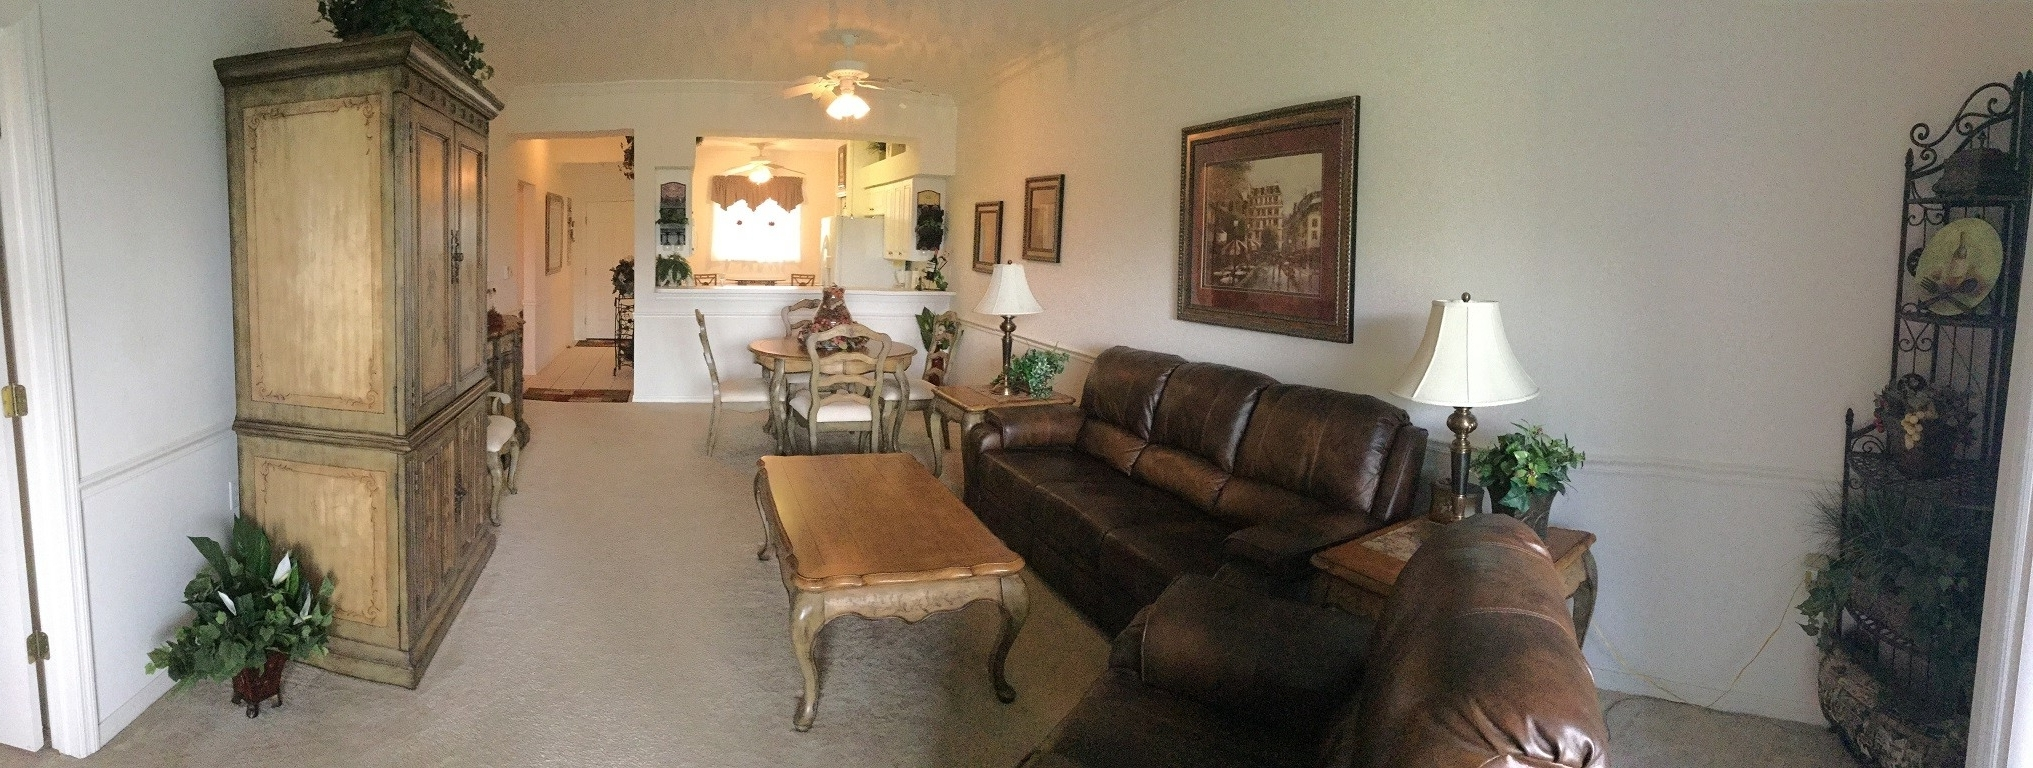 Matter Brothers Complaints Kanes Furniture Fort Myers Baer For Most Up To Date Kanes Sectional Sofas (View 7 of 20)